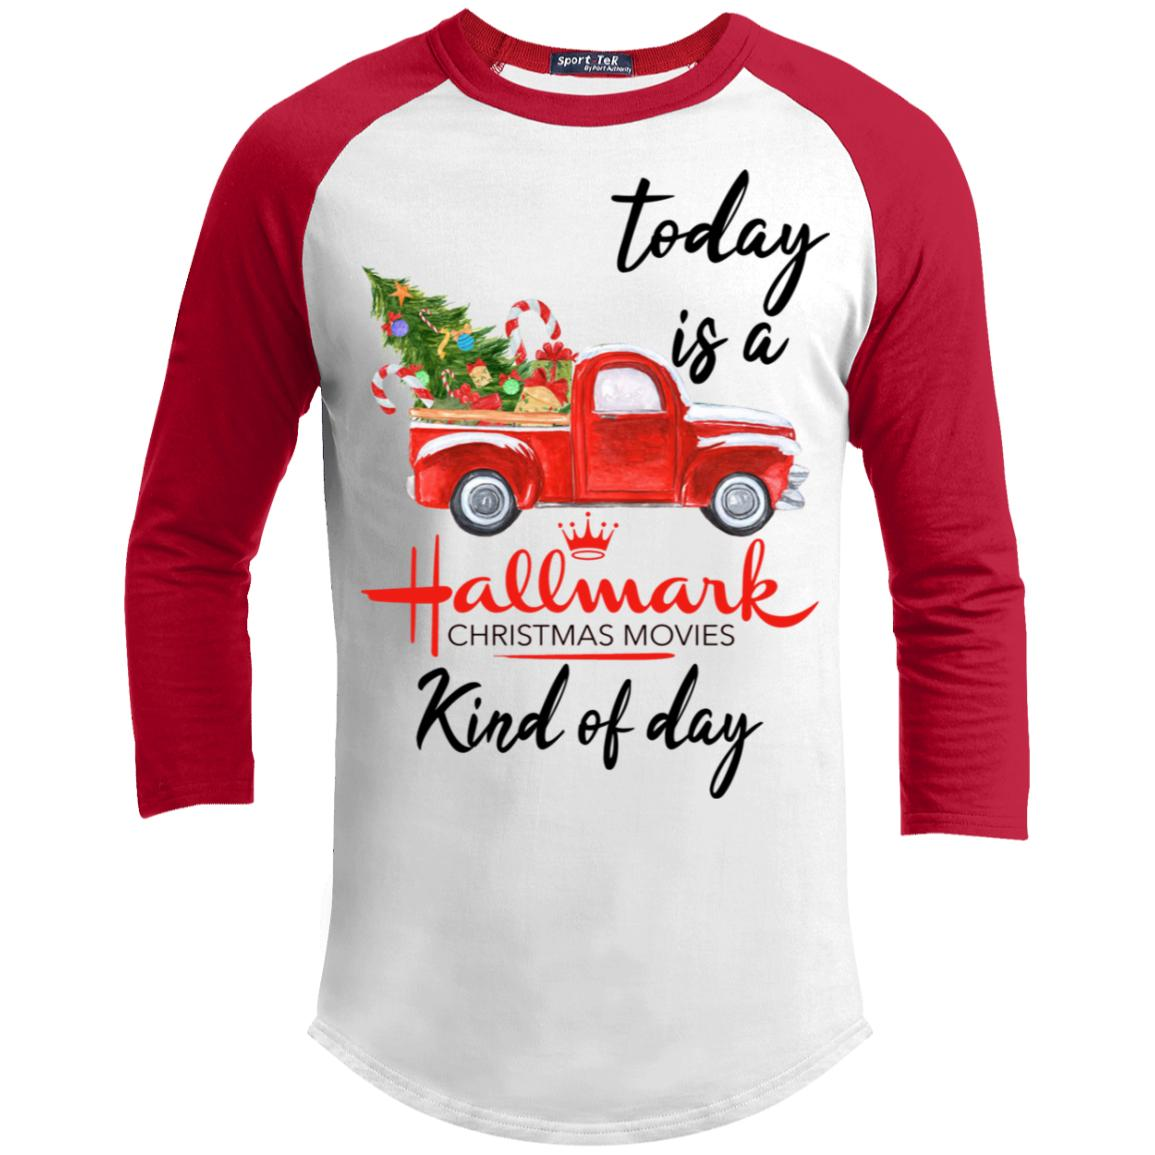 Today is A Hallmark Christmas Movies Kind of Day Sporty T-Shirt